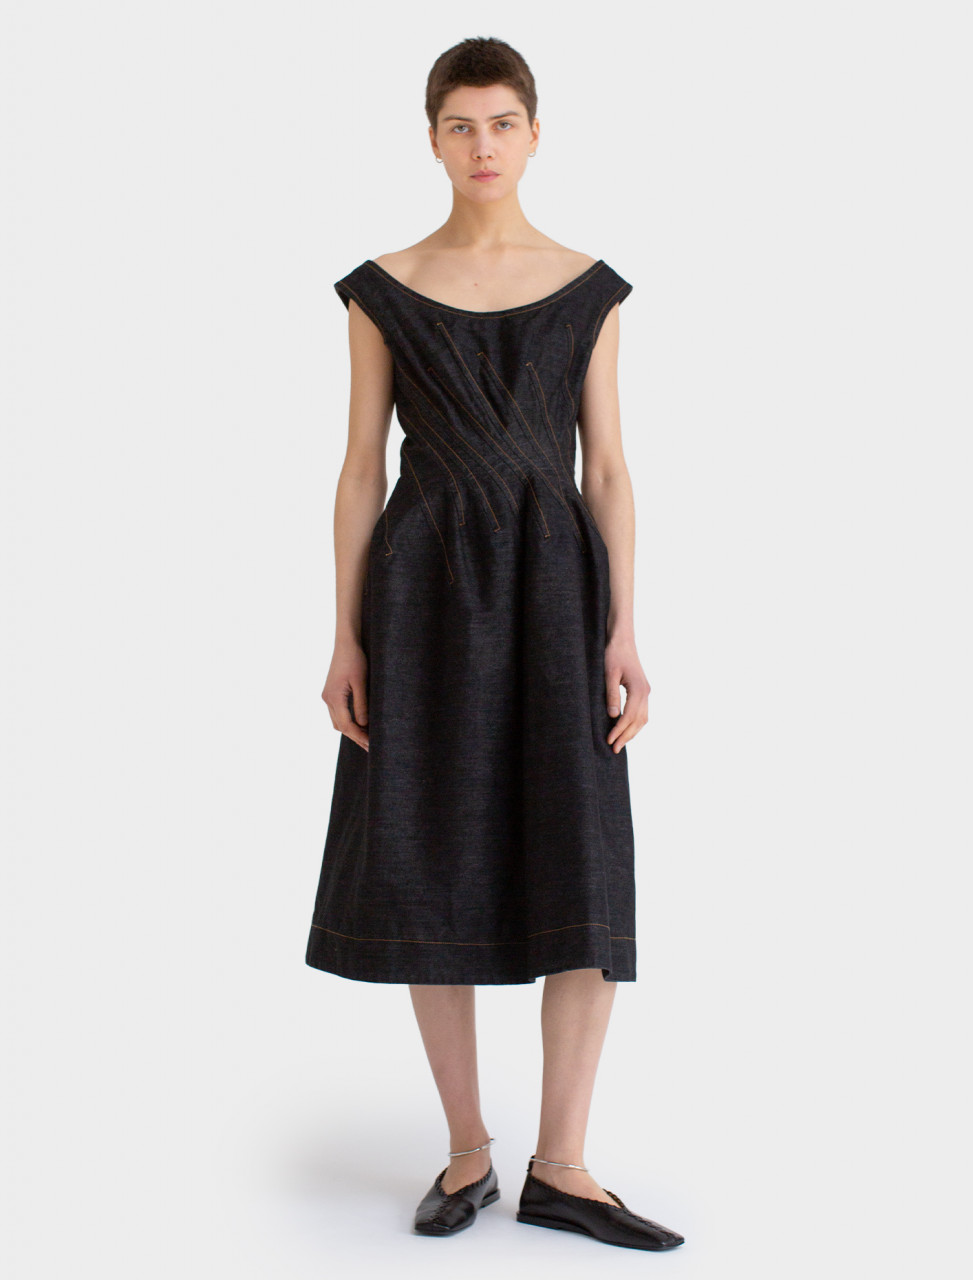 Marni Sleeveless Dress